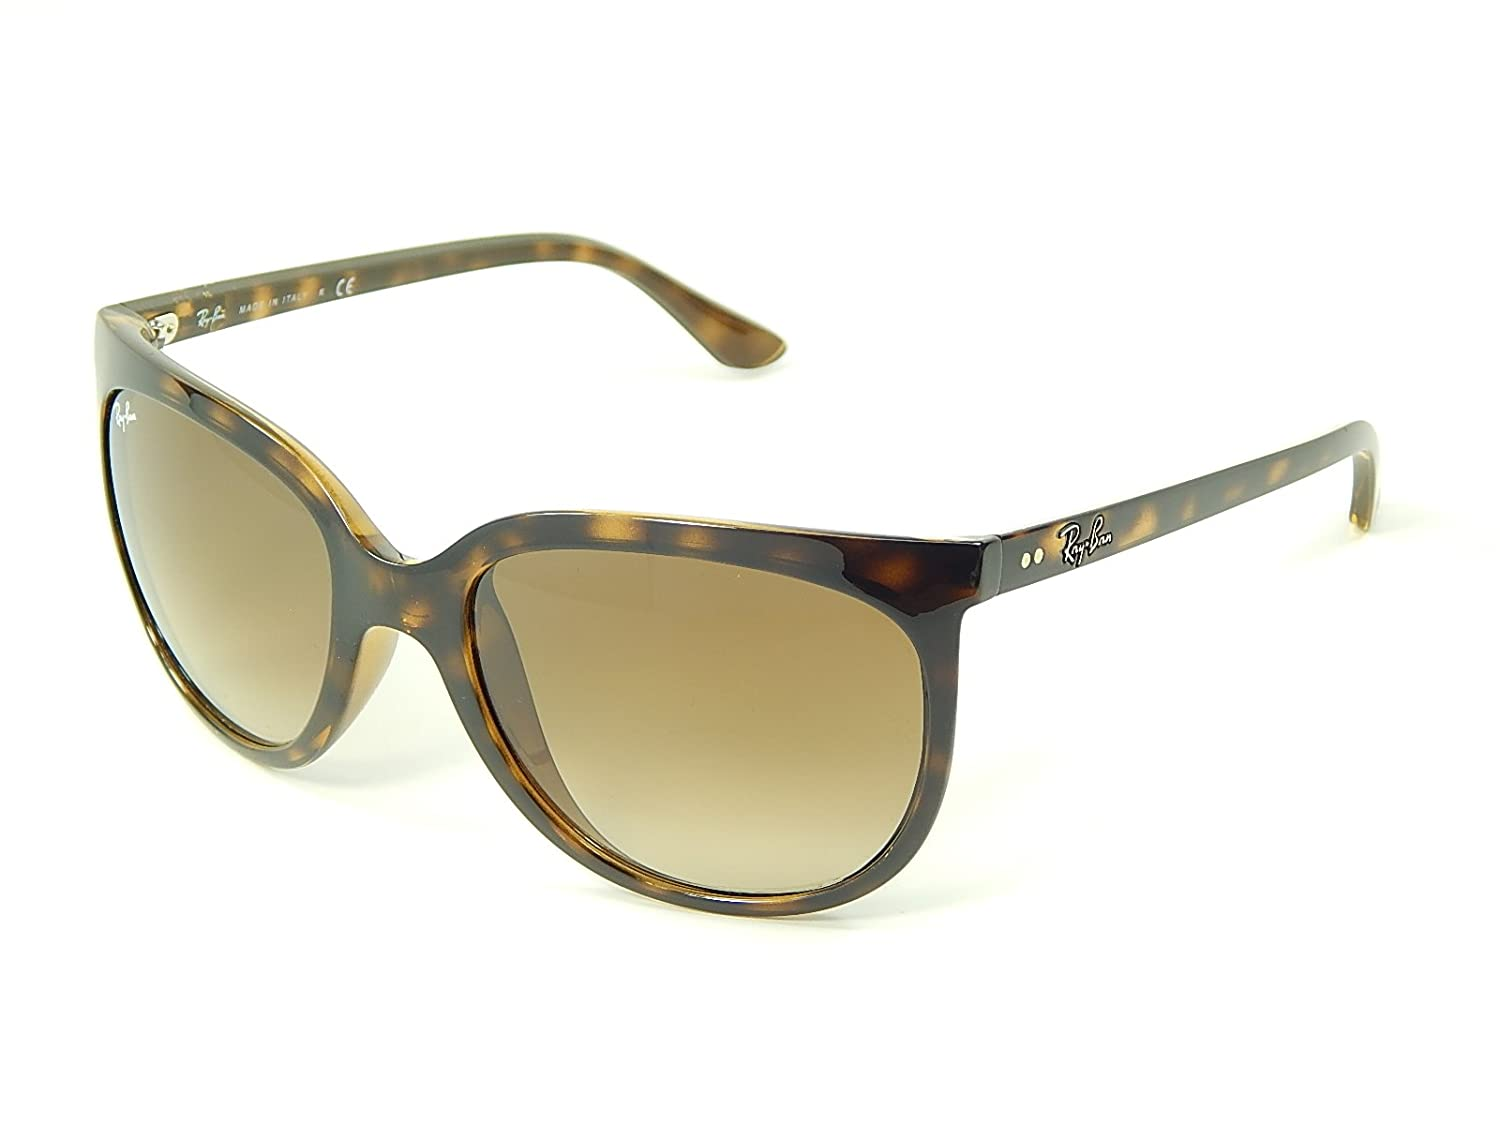 08a32942ea Amazon.com  New Ray Ban Cats 1000 RB4126 710 51 Tortoise Light Brown  Gradient 57mm Sunglasses  Clothing